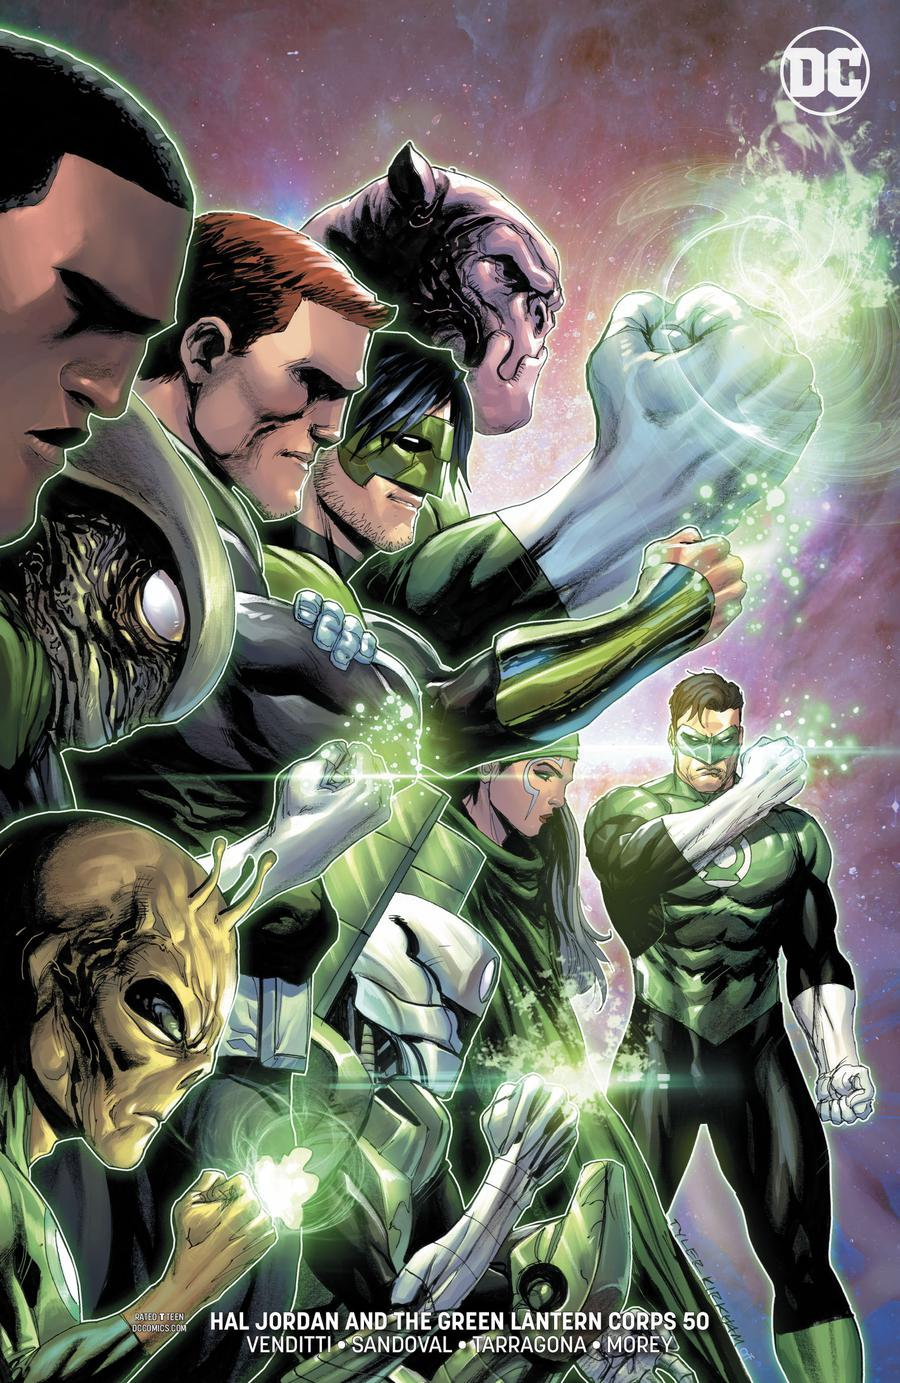 Hal Jordan & the Green Lantern Corps #50